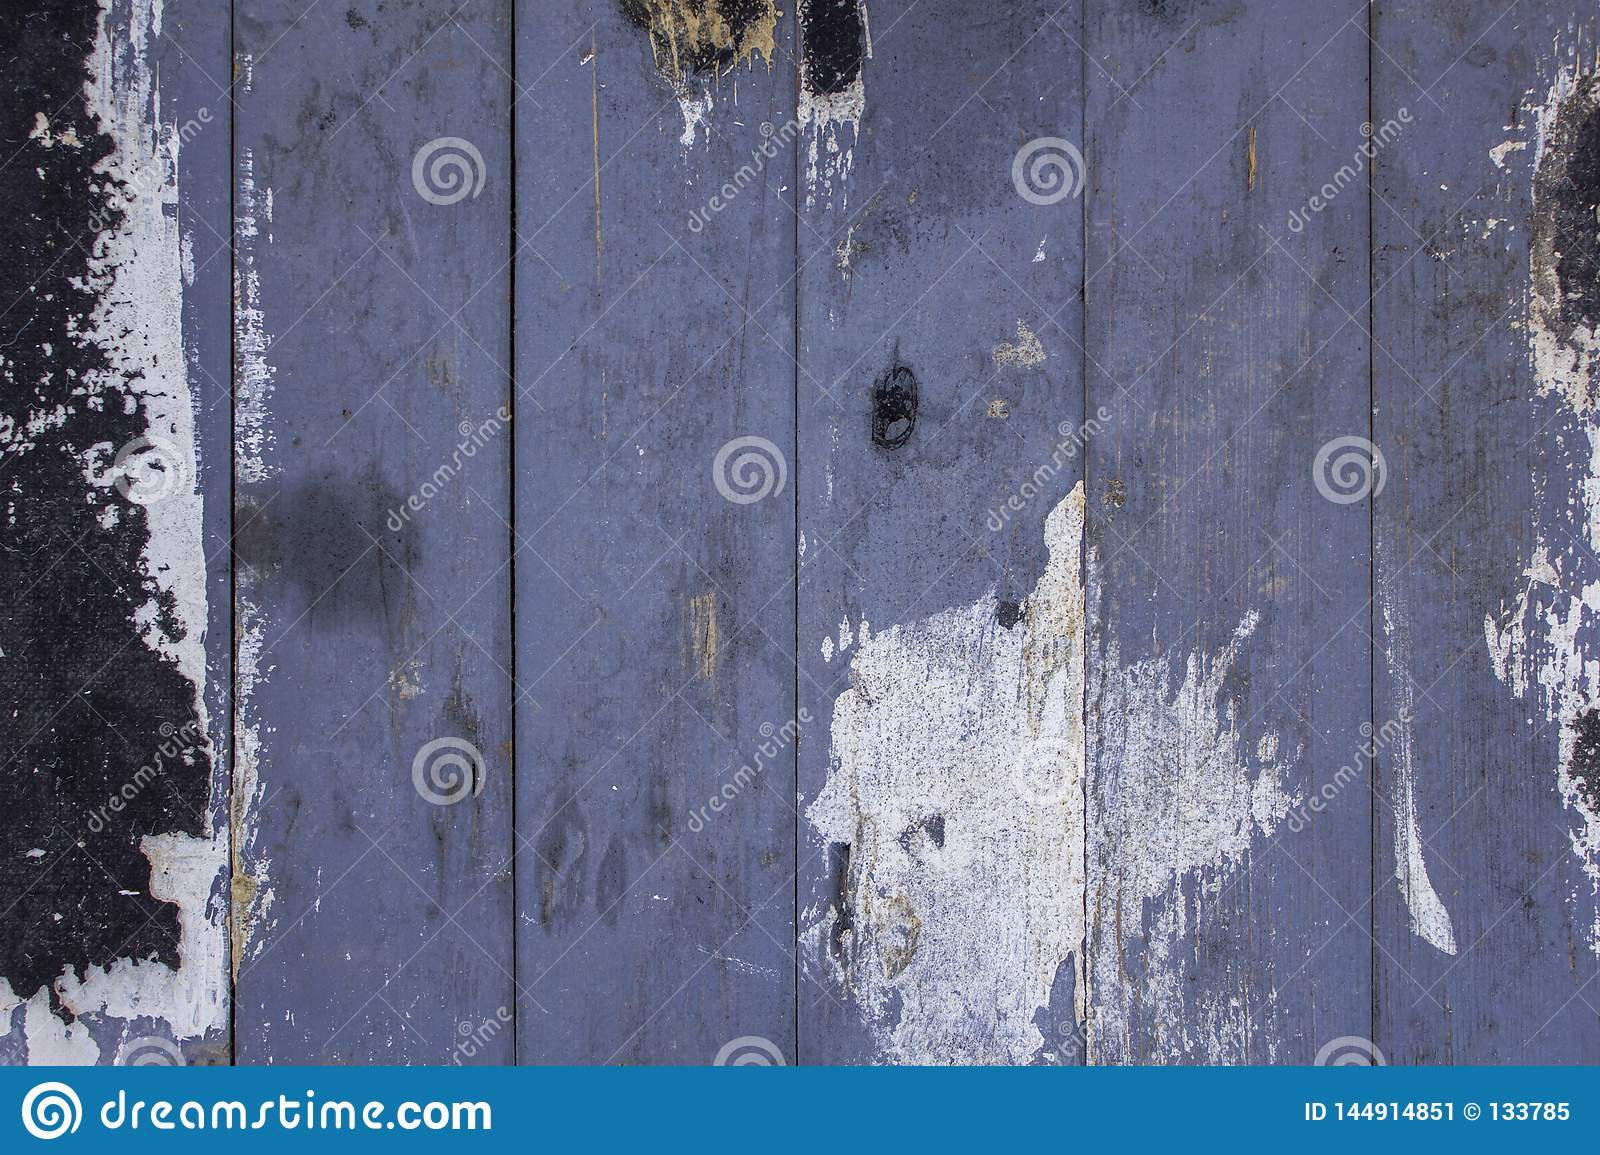 Old dirty blue gray fence from wooden boards with scratches and stains of black white paint. vertical lines. rough surface texture